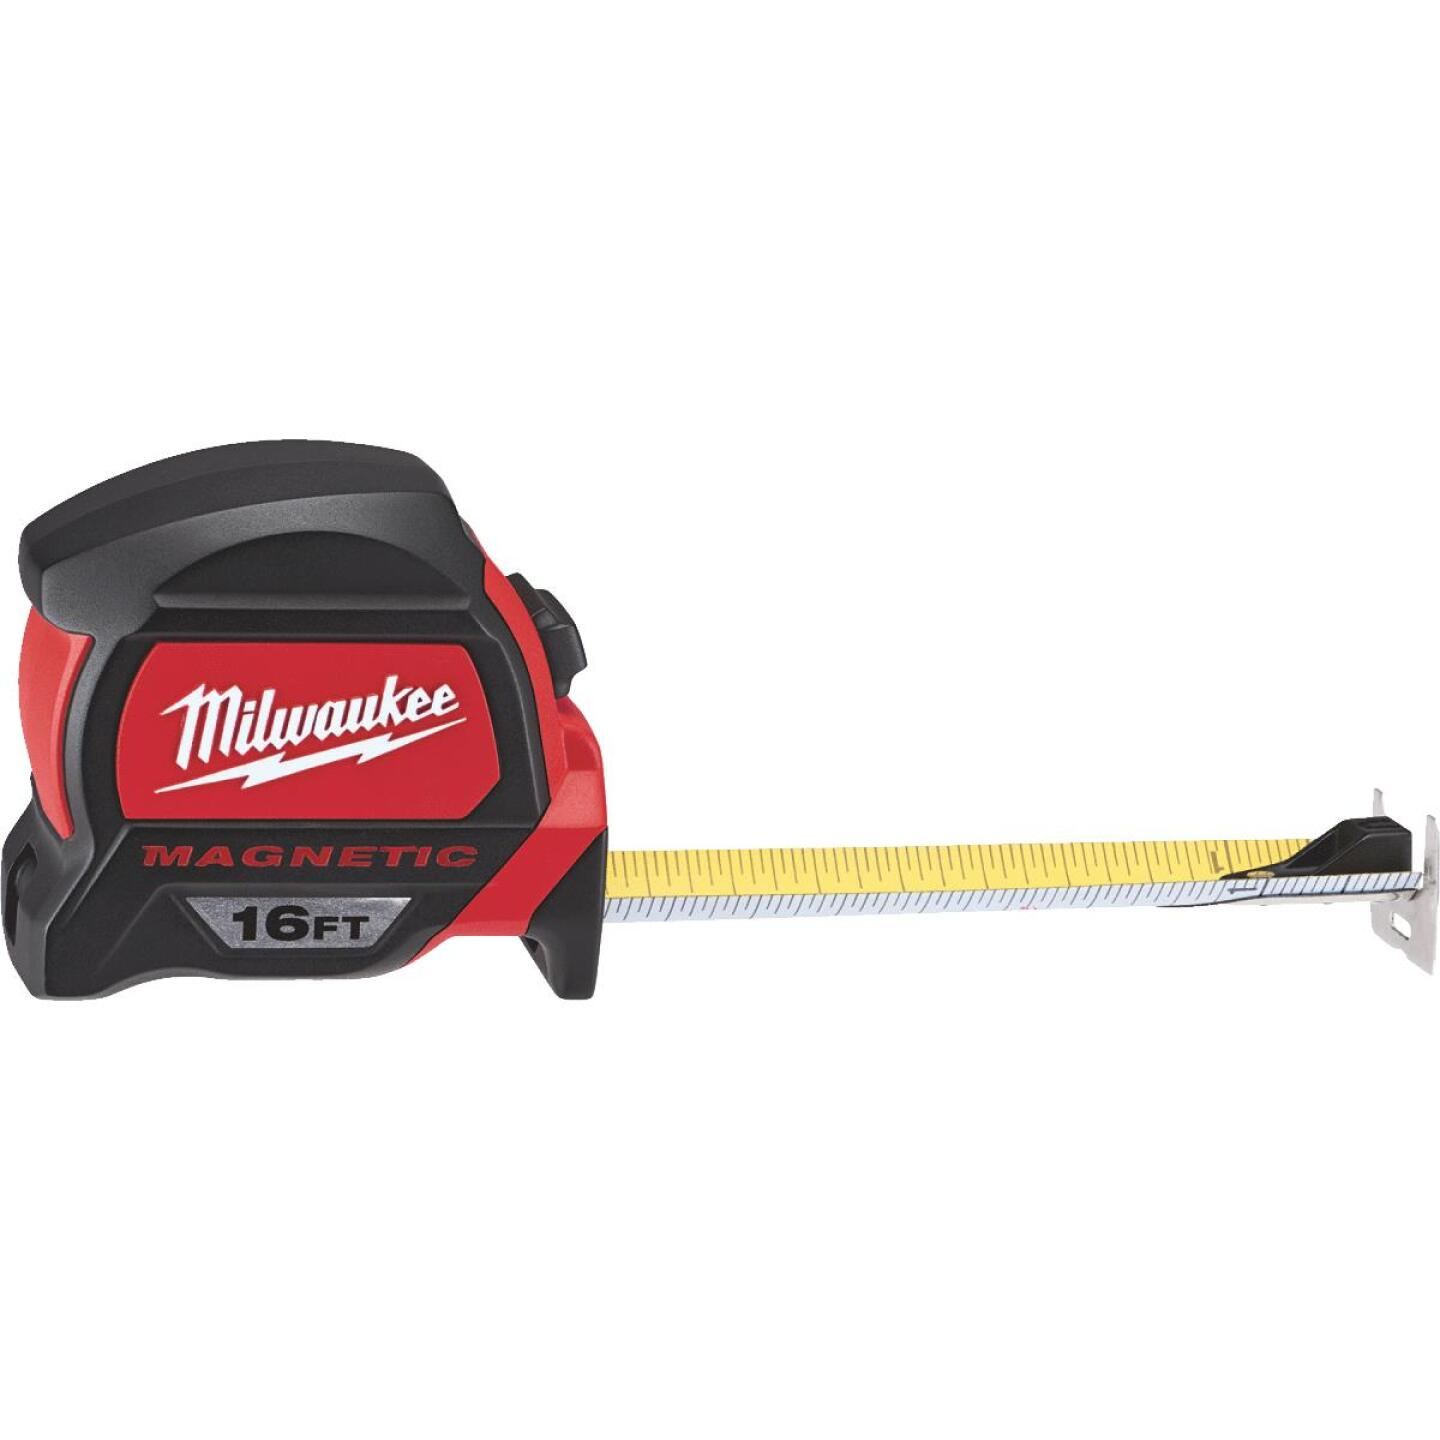 Milwaukee 16 Ft. Magnetic Tape Measure with Blueprint Scale Image 1